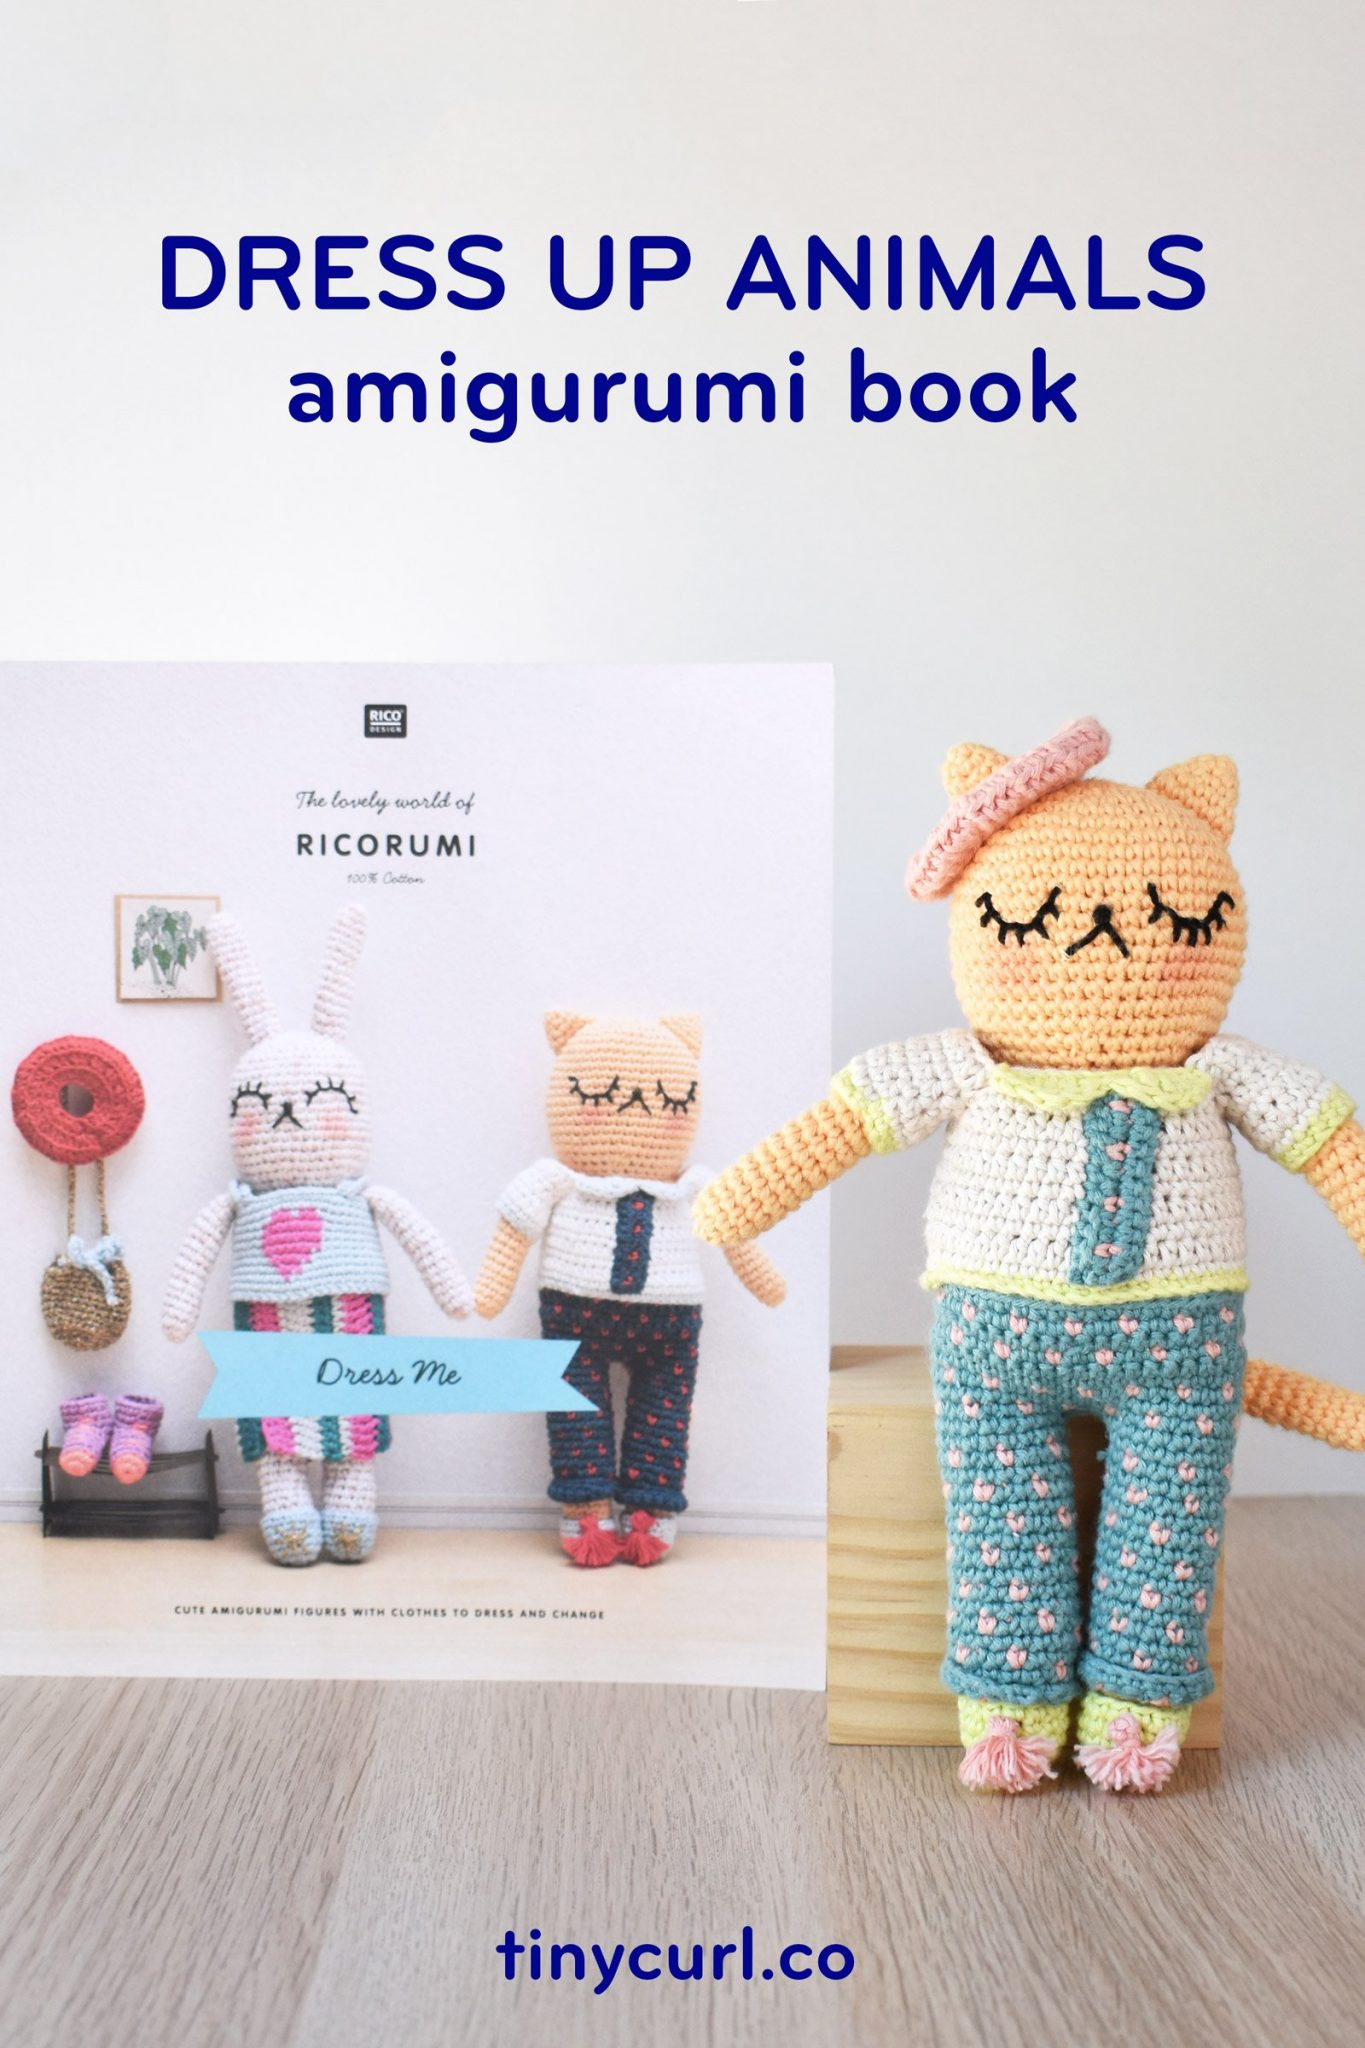 "Ricorumi Dress Me amigurumi book standing up behind a crochet cat in an outfit. The text on the image says ""Dress Up Animals amigurumi book"""